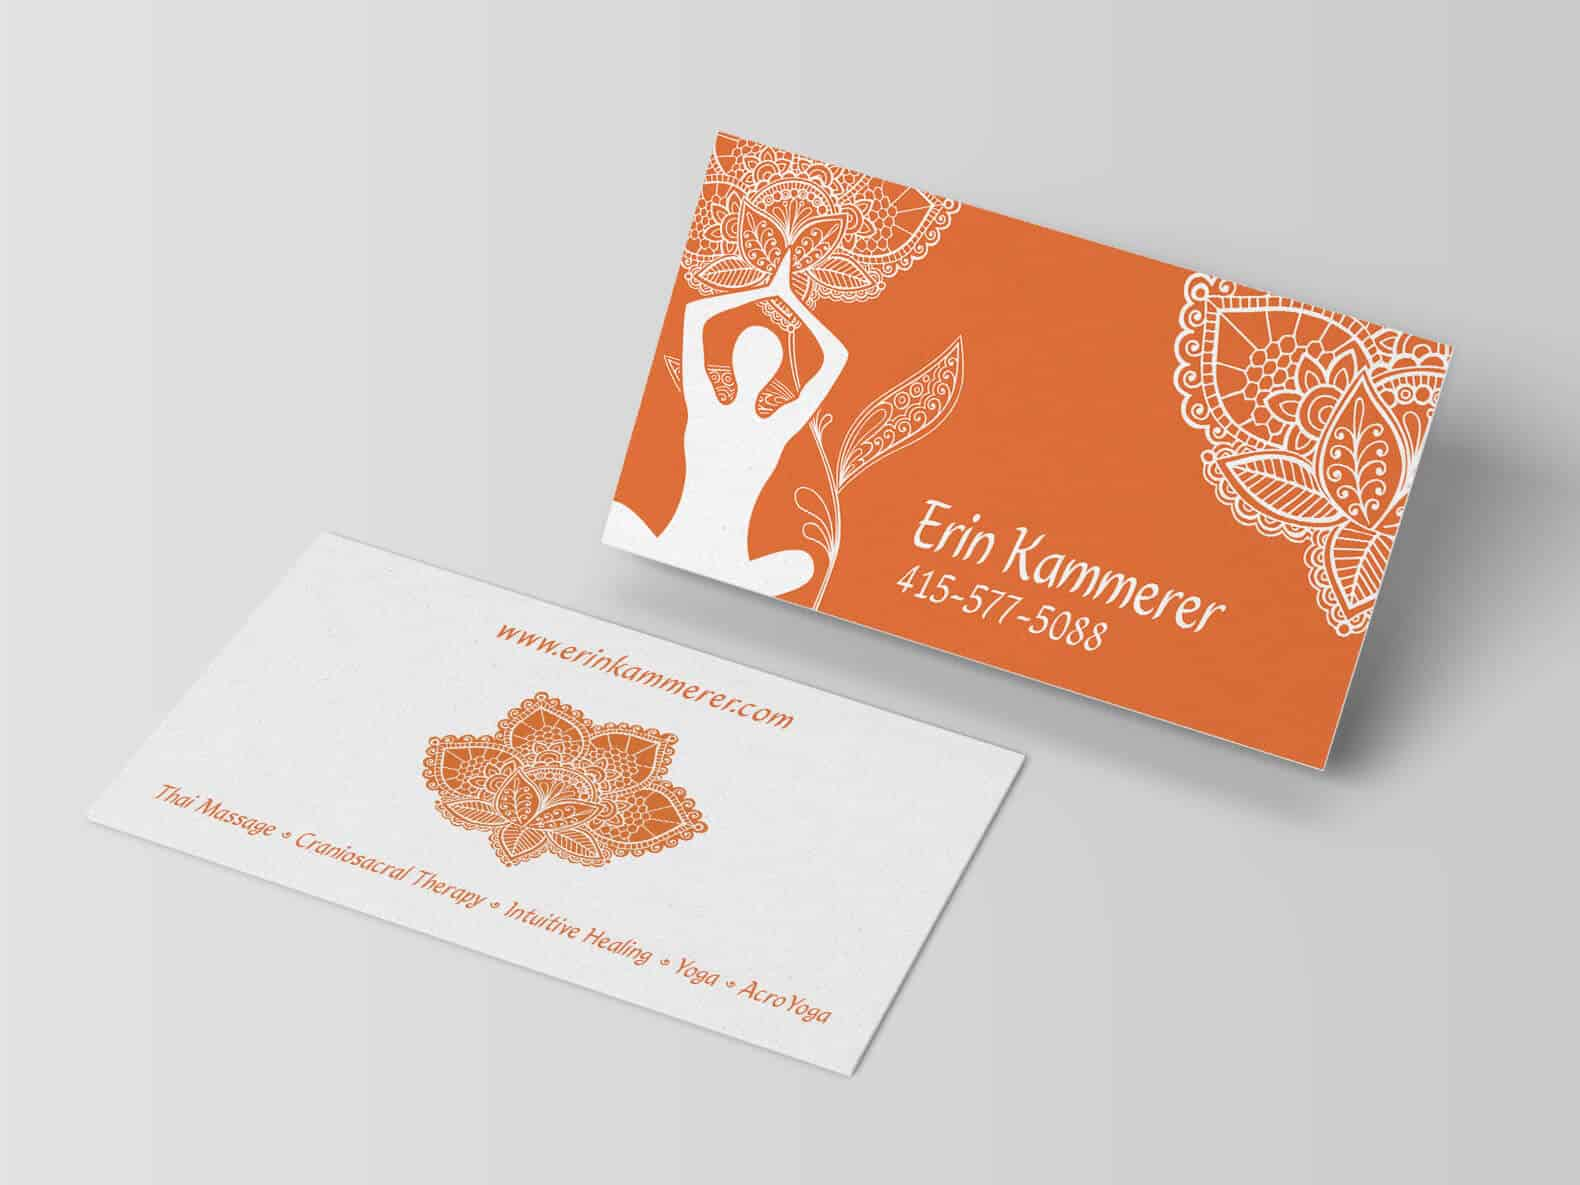 Erin Kammerer - Business Card Design - Graphic Design, Logo Design ...